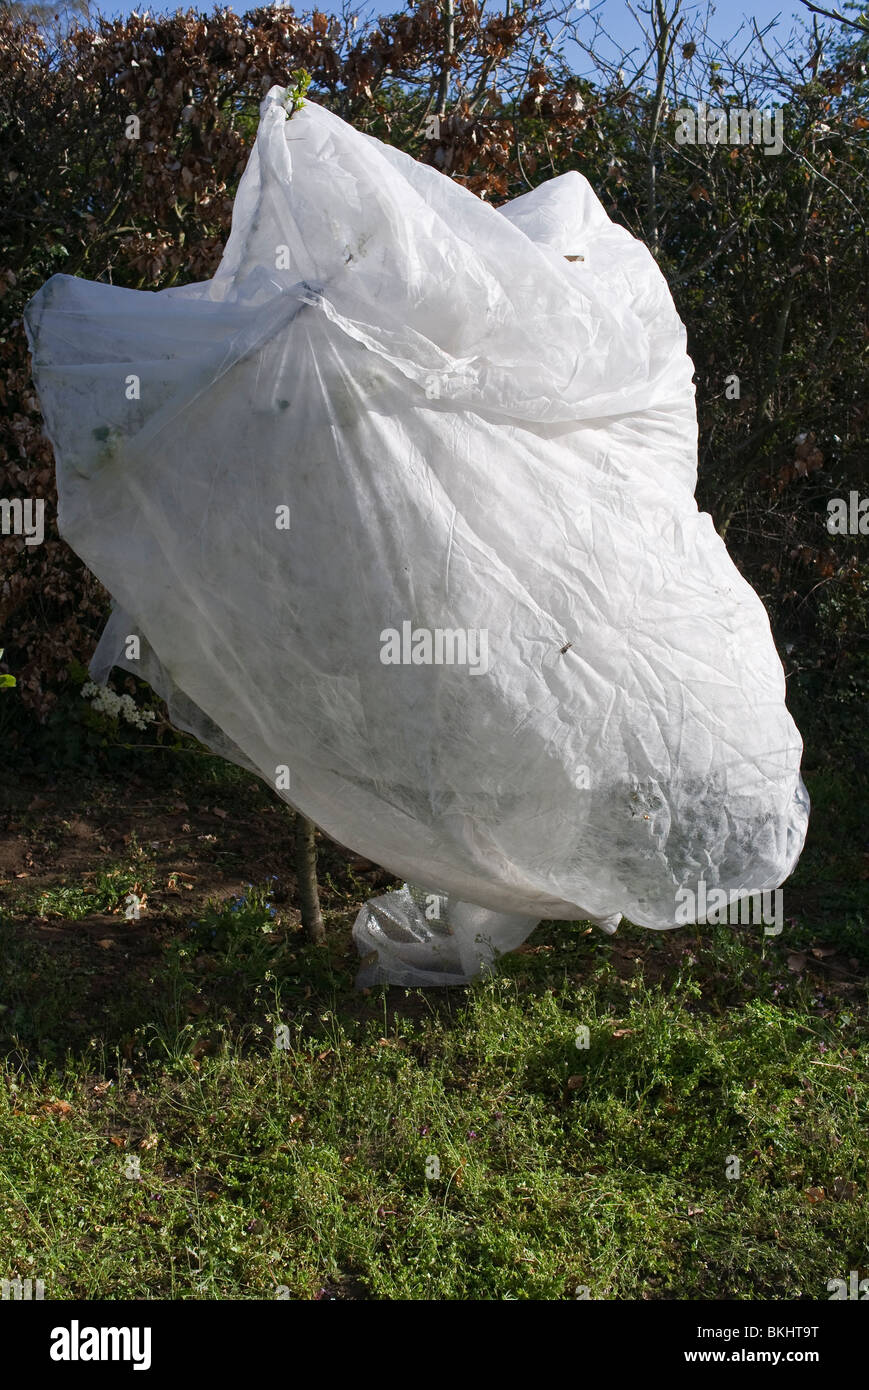 Damson tree protected from overnight frost with fleece in April - Stock Image